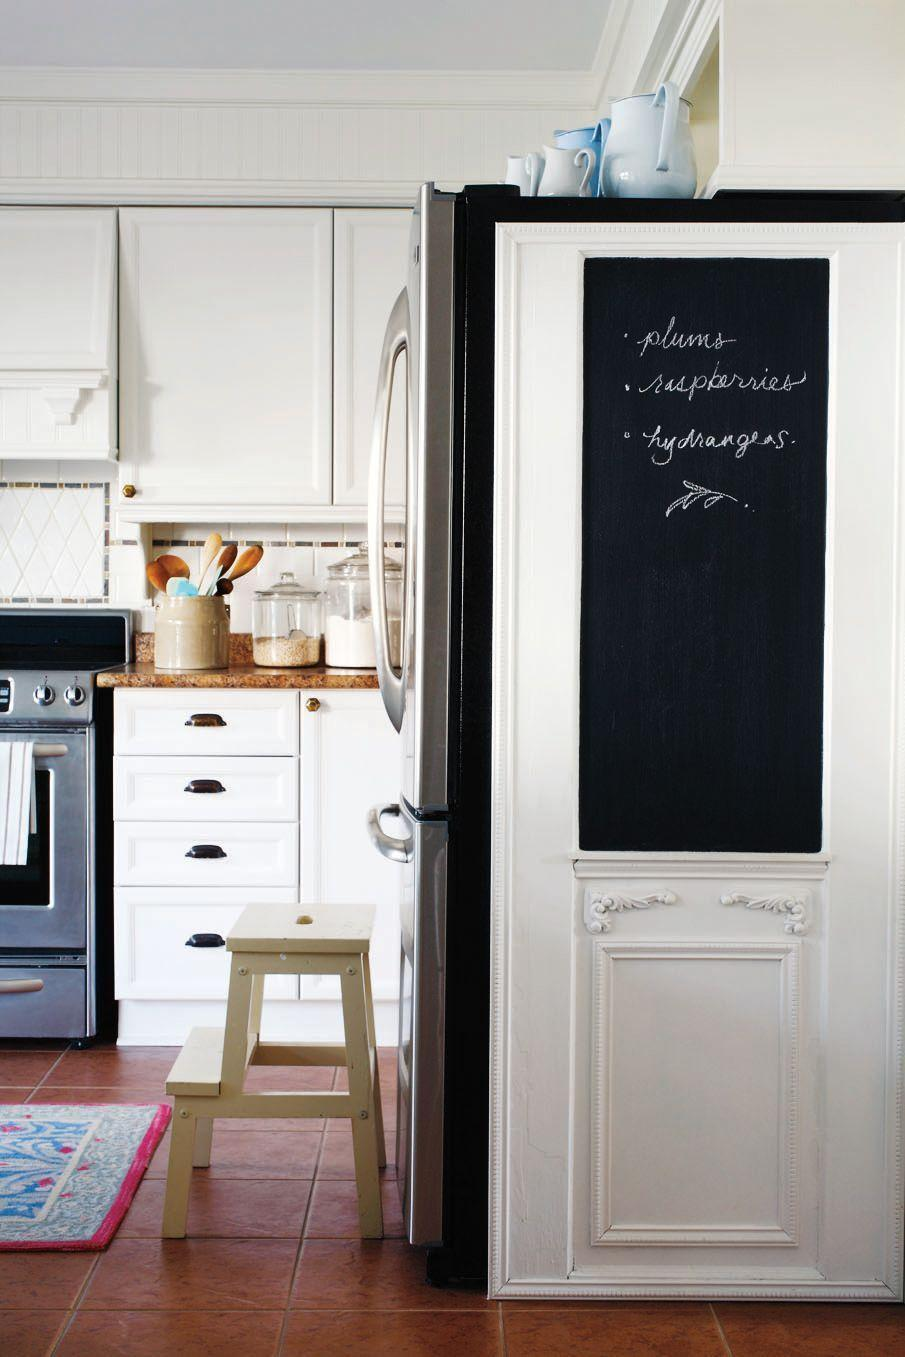 "<p>You can bring function and organization to just about any space in your home. The perfect example? Add a chalkboard panel to the side of your refrigerator to keep track of your weekly grocery list.</p><p><strong>RELATED:</strong> <a href=""https://www.goodhousekeeping.com/home/tips/g2610/best-organizing-tips/"" rel=""nofollow noopener"" target=""_blank"" data-ylk=""slk:100 Best Organizing Tricks for the Tidiest Home Ever"" class=""link rapid-noclick-resp"">100 Best Organizing Tricks for the Tidiest Home Ever</a></p>"